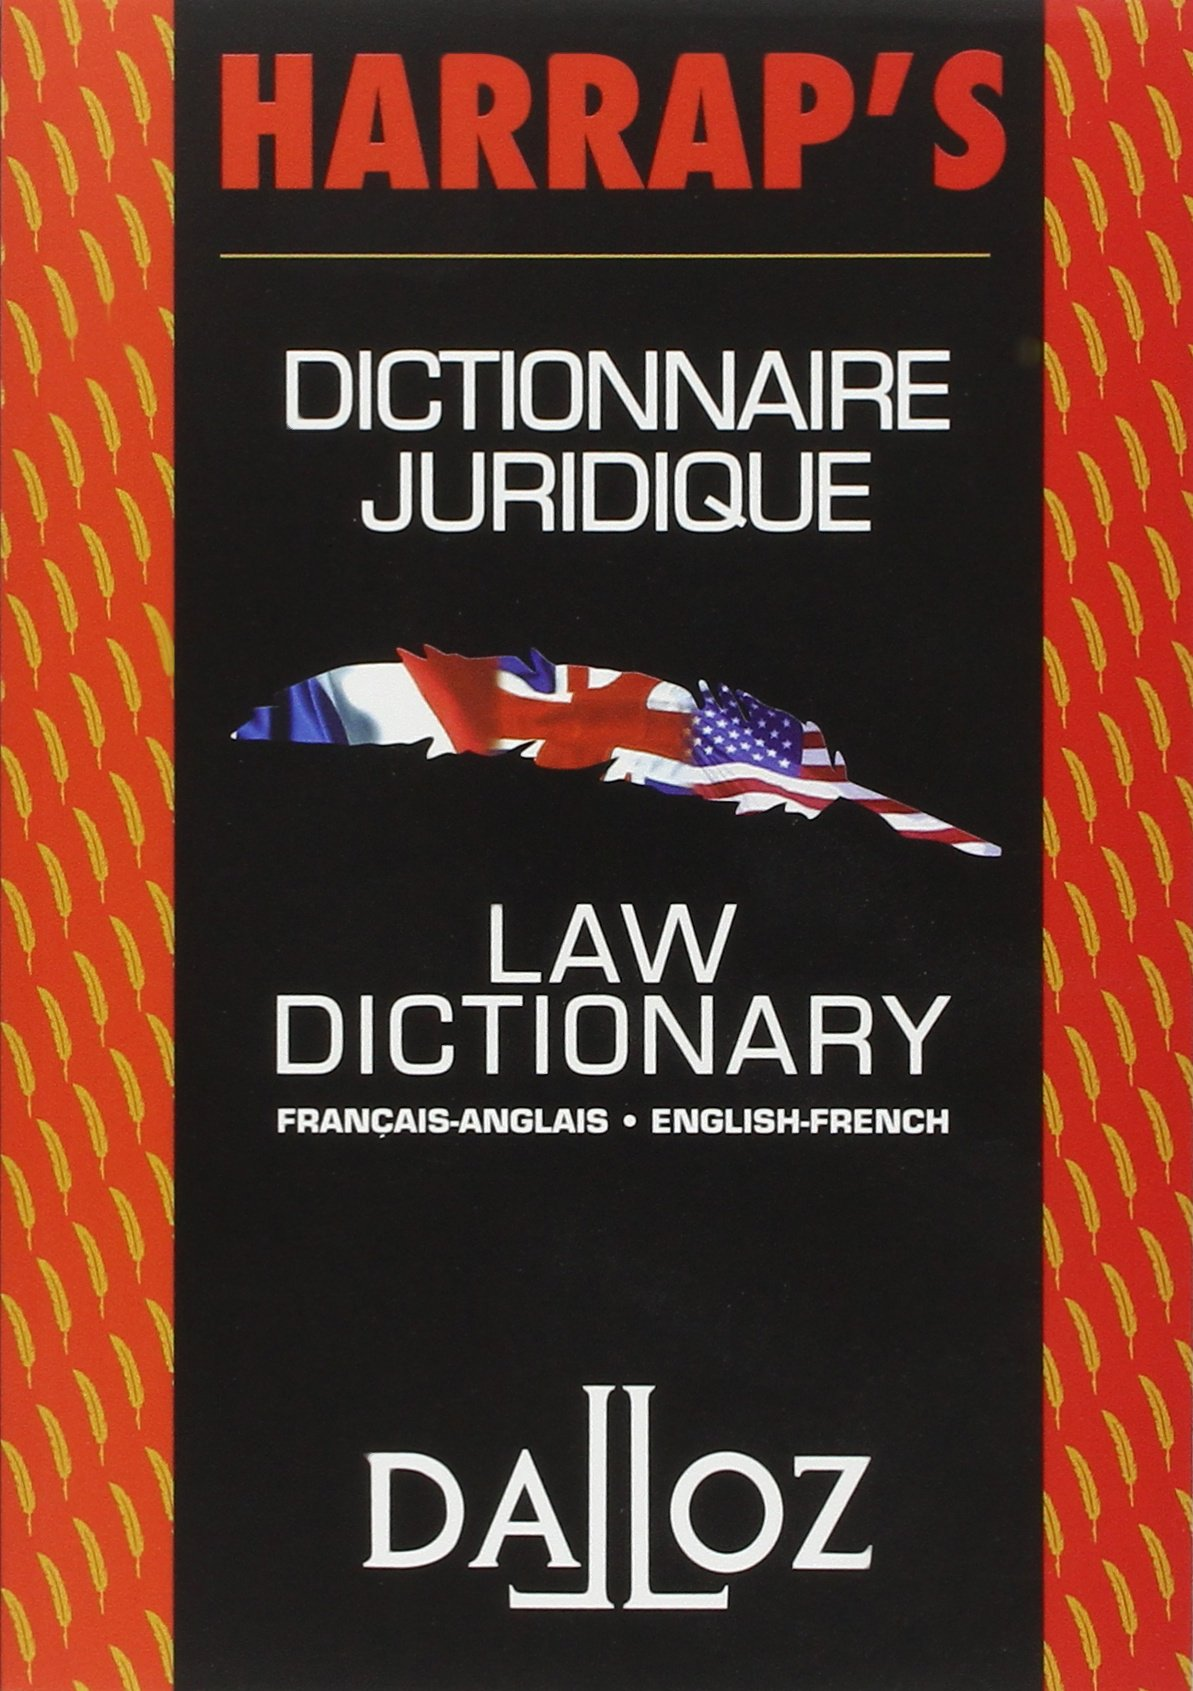 Dictionnaire Juridique Français Anglais   Anglais Français   Law Dictionary French English English French  Francais   Anglais English   French  Lexiques